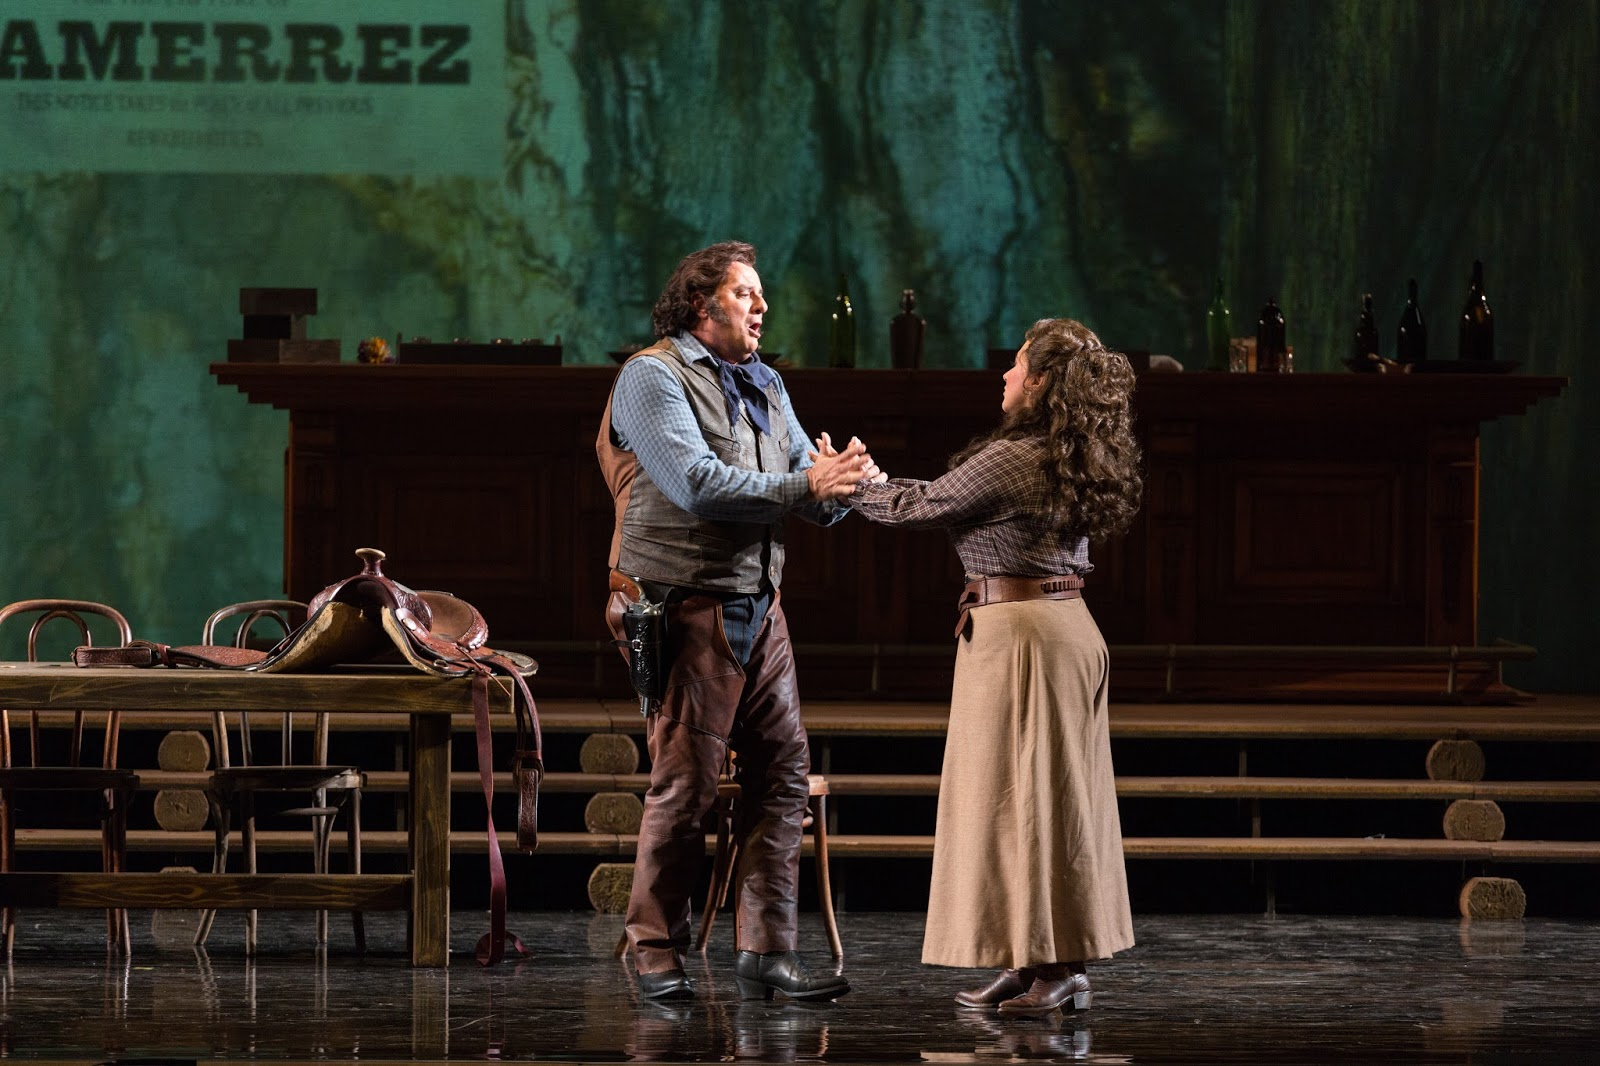 IN PERFORMANCE: Tenor MARCELLO GIORDANI as Johnson (left) and soprano KRISTIN SAMPSON as Minnie (right) in Opera Carolina's production of Giacomo Puccini's LA FANCIULLA DEL WEST, April 2017 [Photo by Mitchell Kearney, © by Opera Carolina]